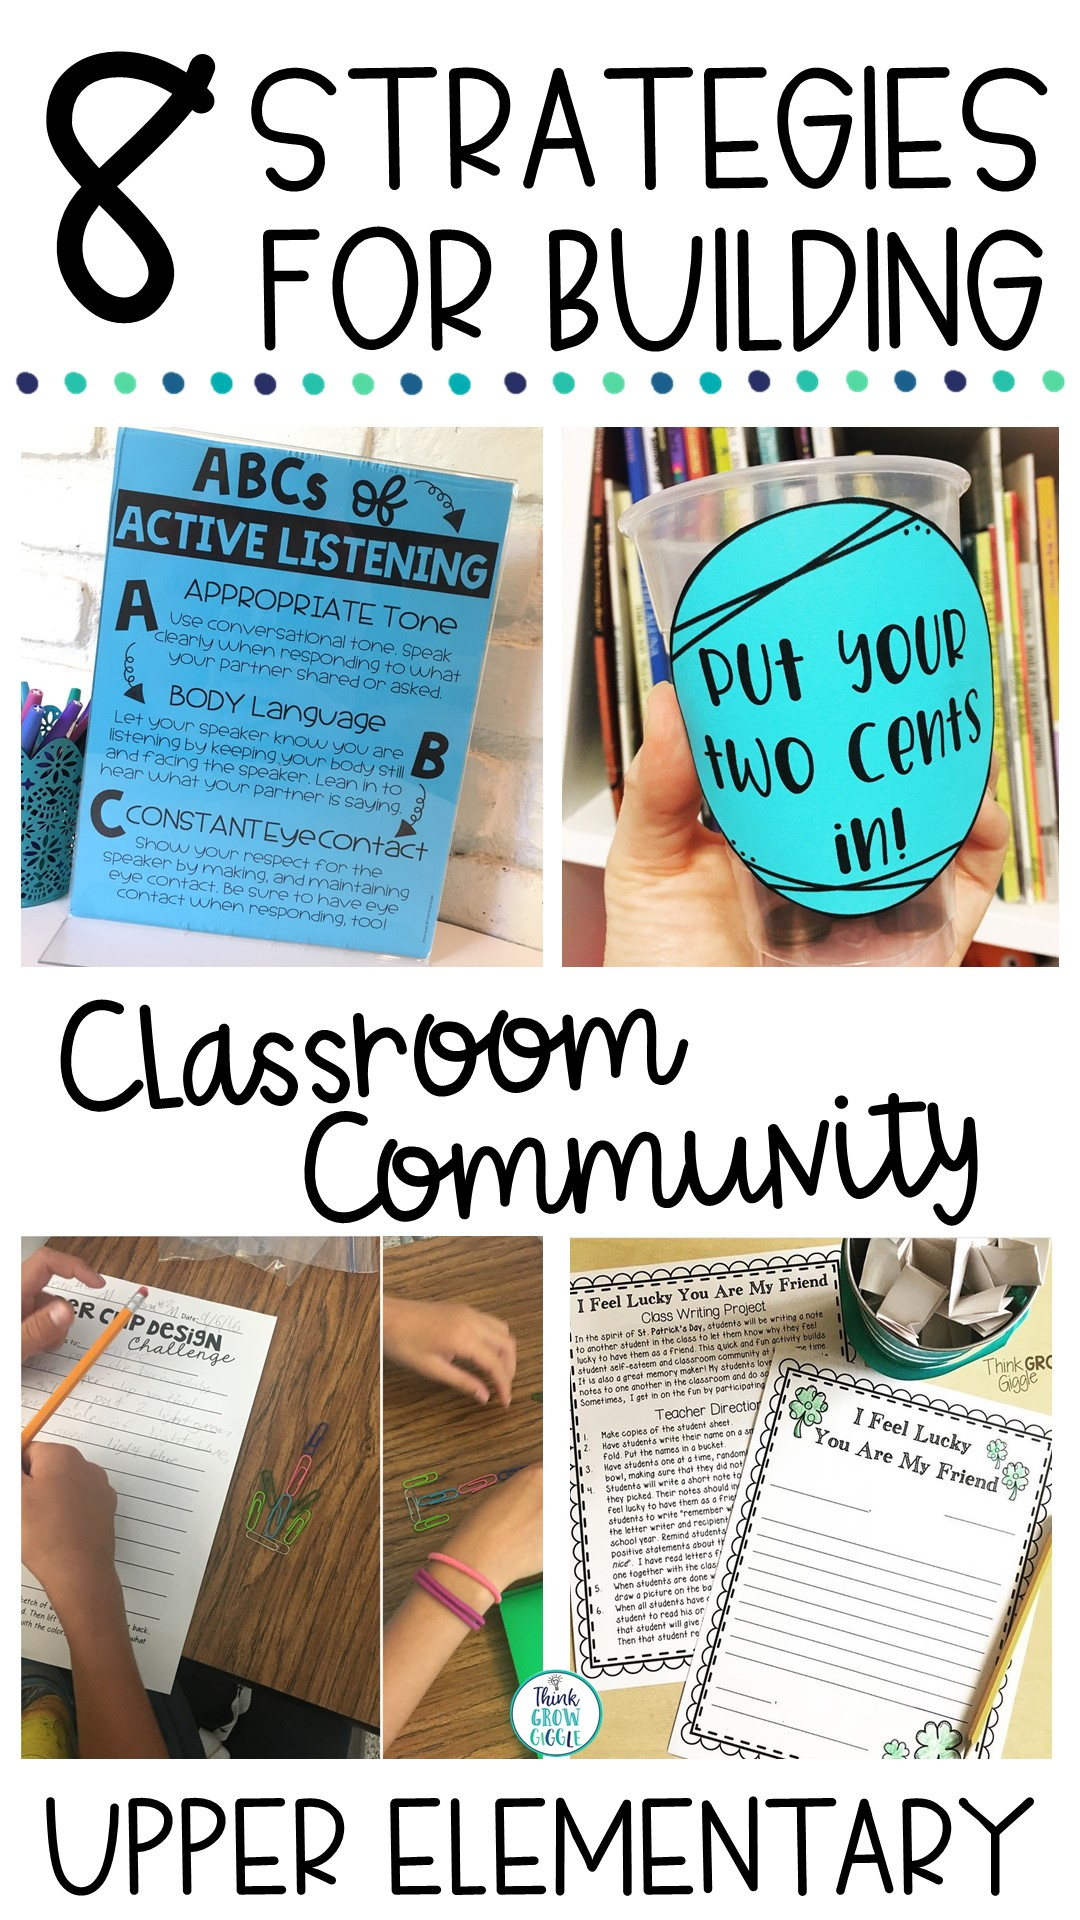 how to Build Classroom Community